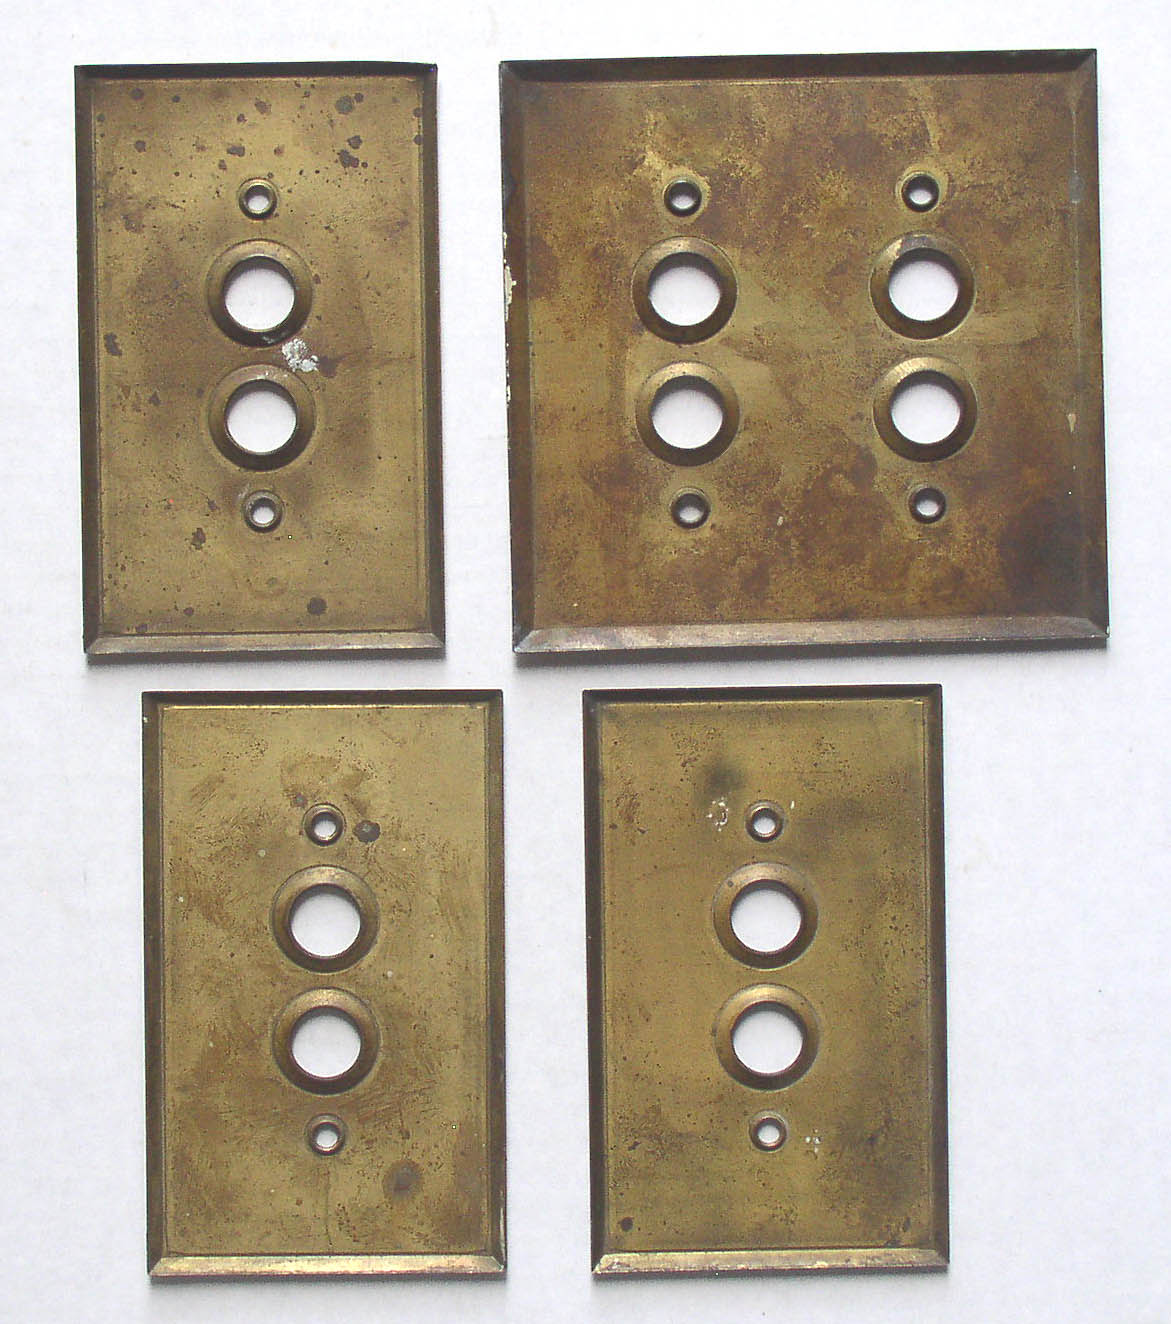 Brass Light Switch Covers Captivating 4 Antique Brass Push Button Switch Plates Covers  Thingery Inspiration